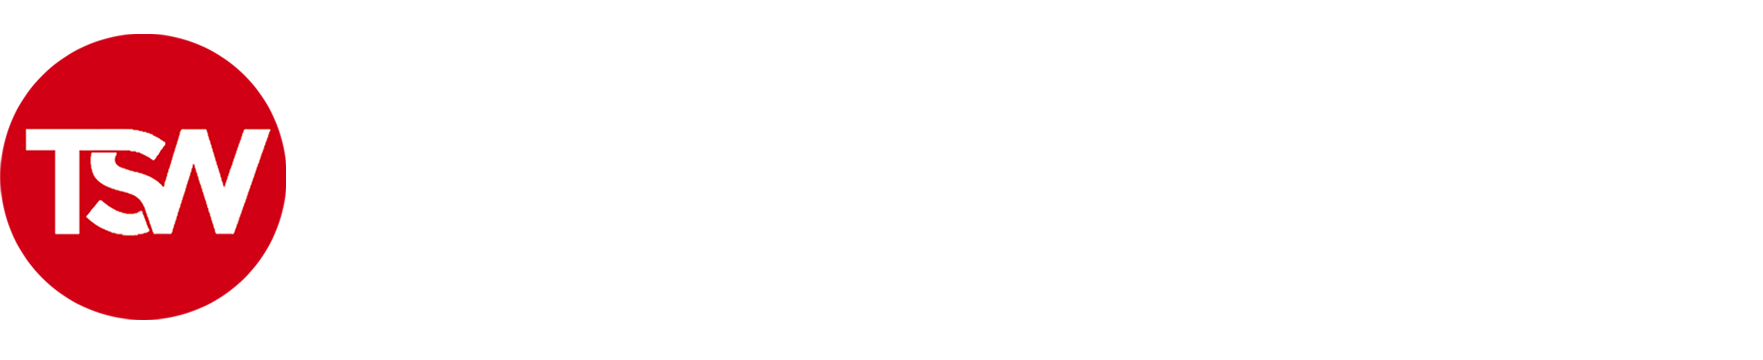 The Story Watch